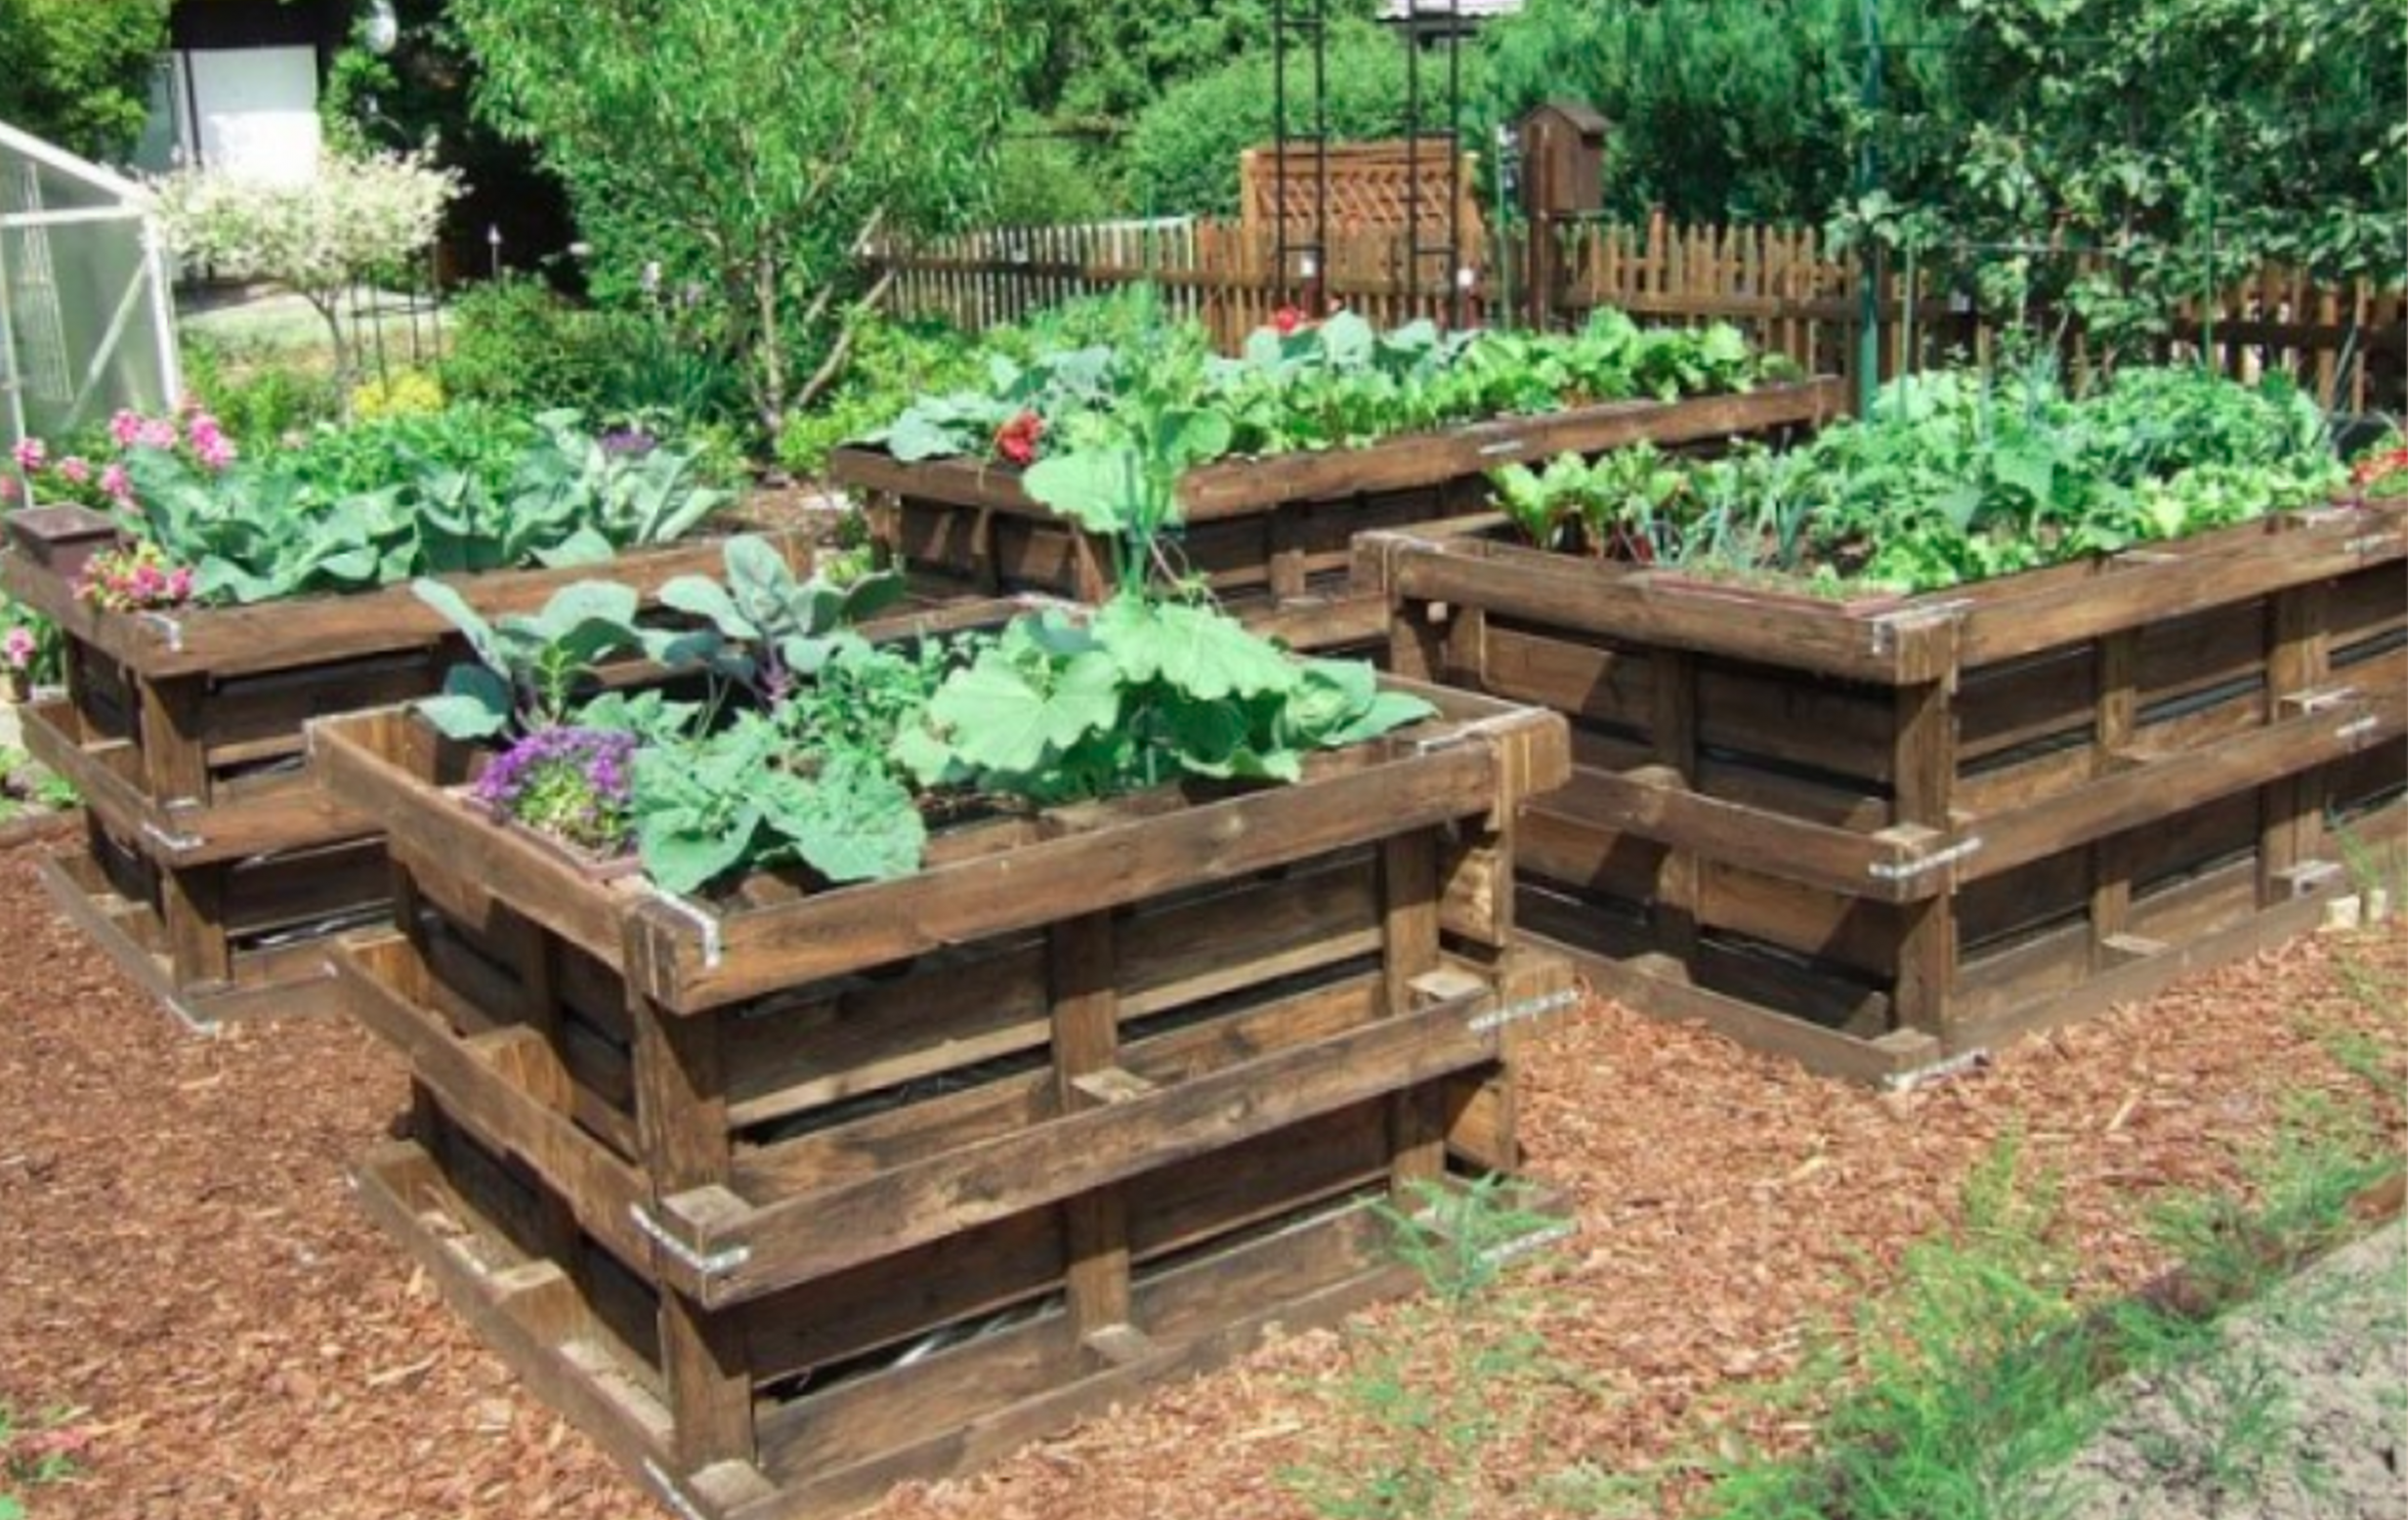 8 Wood Pallet Ideas for the Garden - garden ideas with pallets